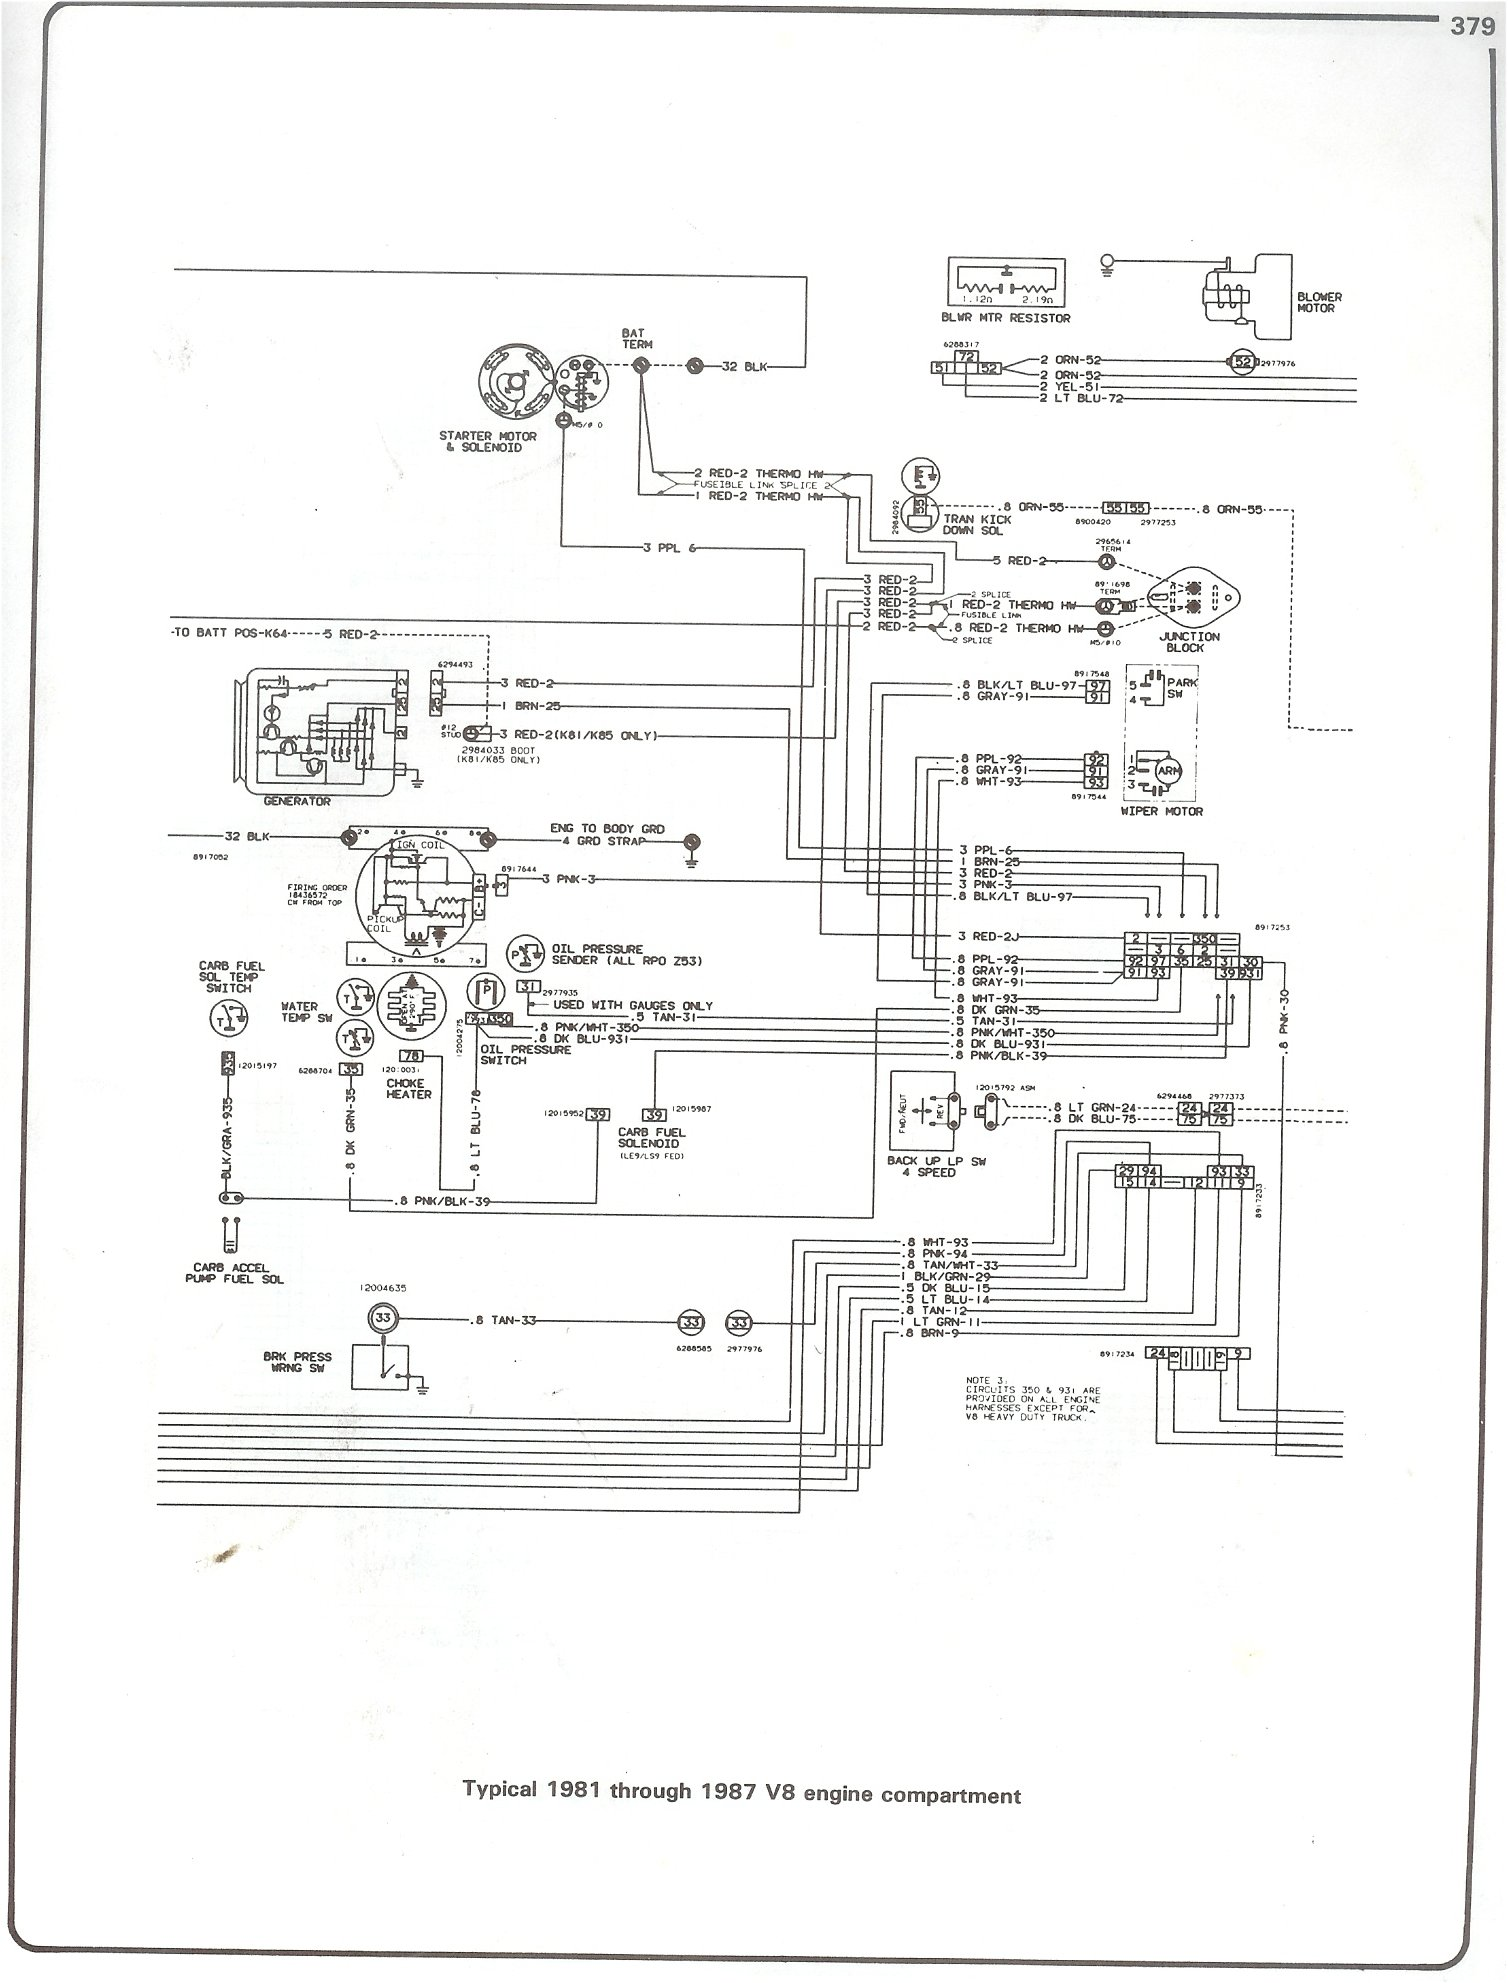 81 87_V8_engine complete 73 87 wiring diagrams 1986 chevy truck wiper motor wiring diagram at panicattacktreatment.co